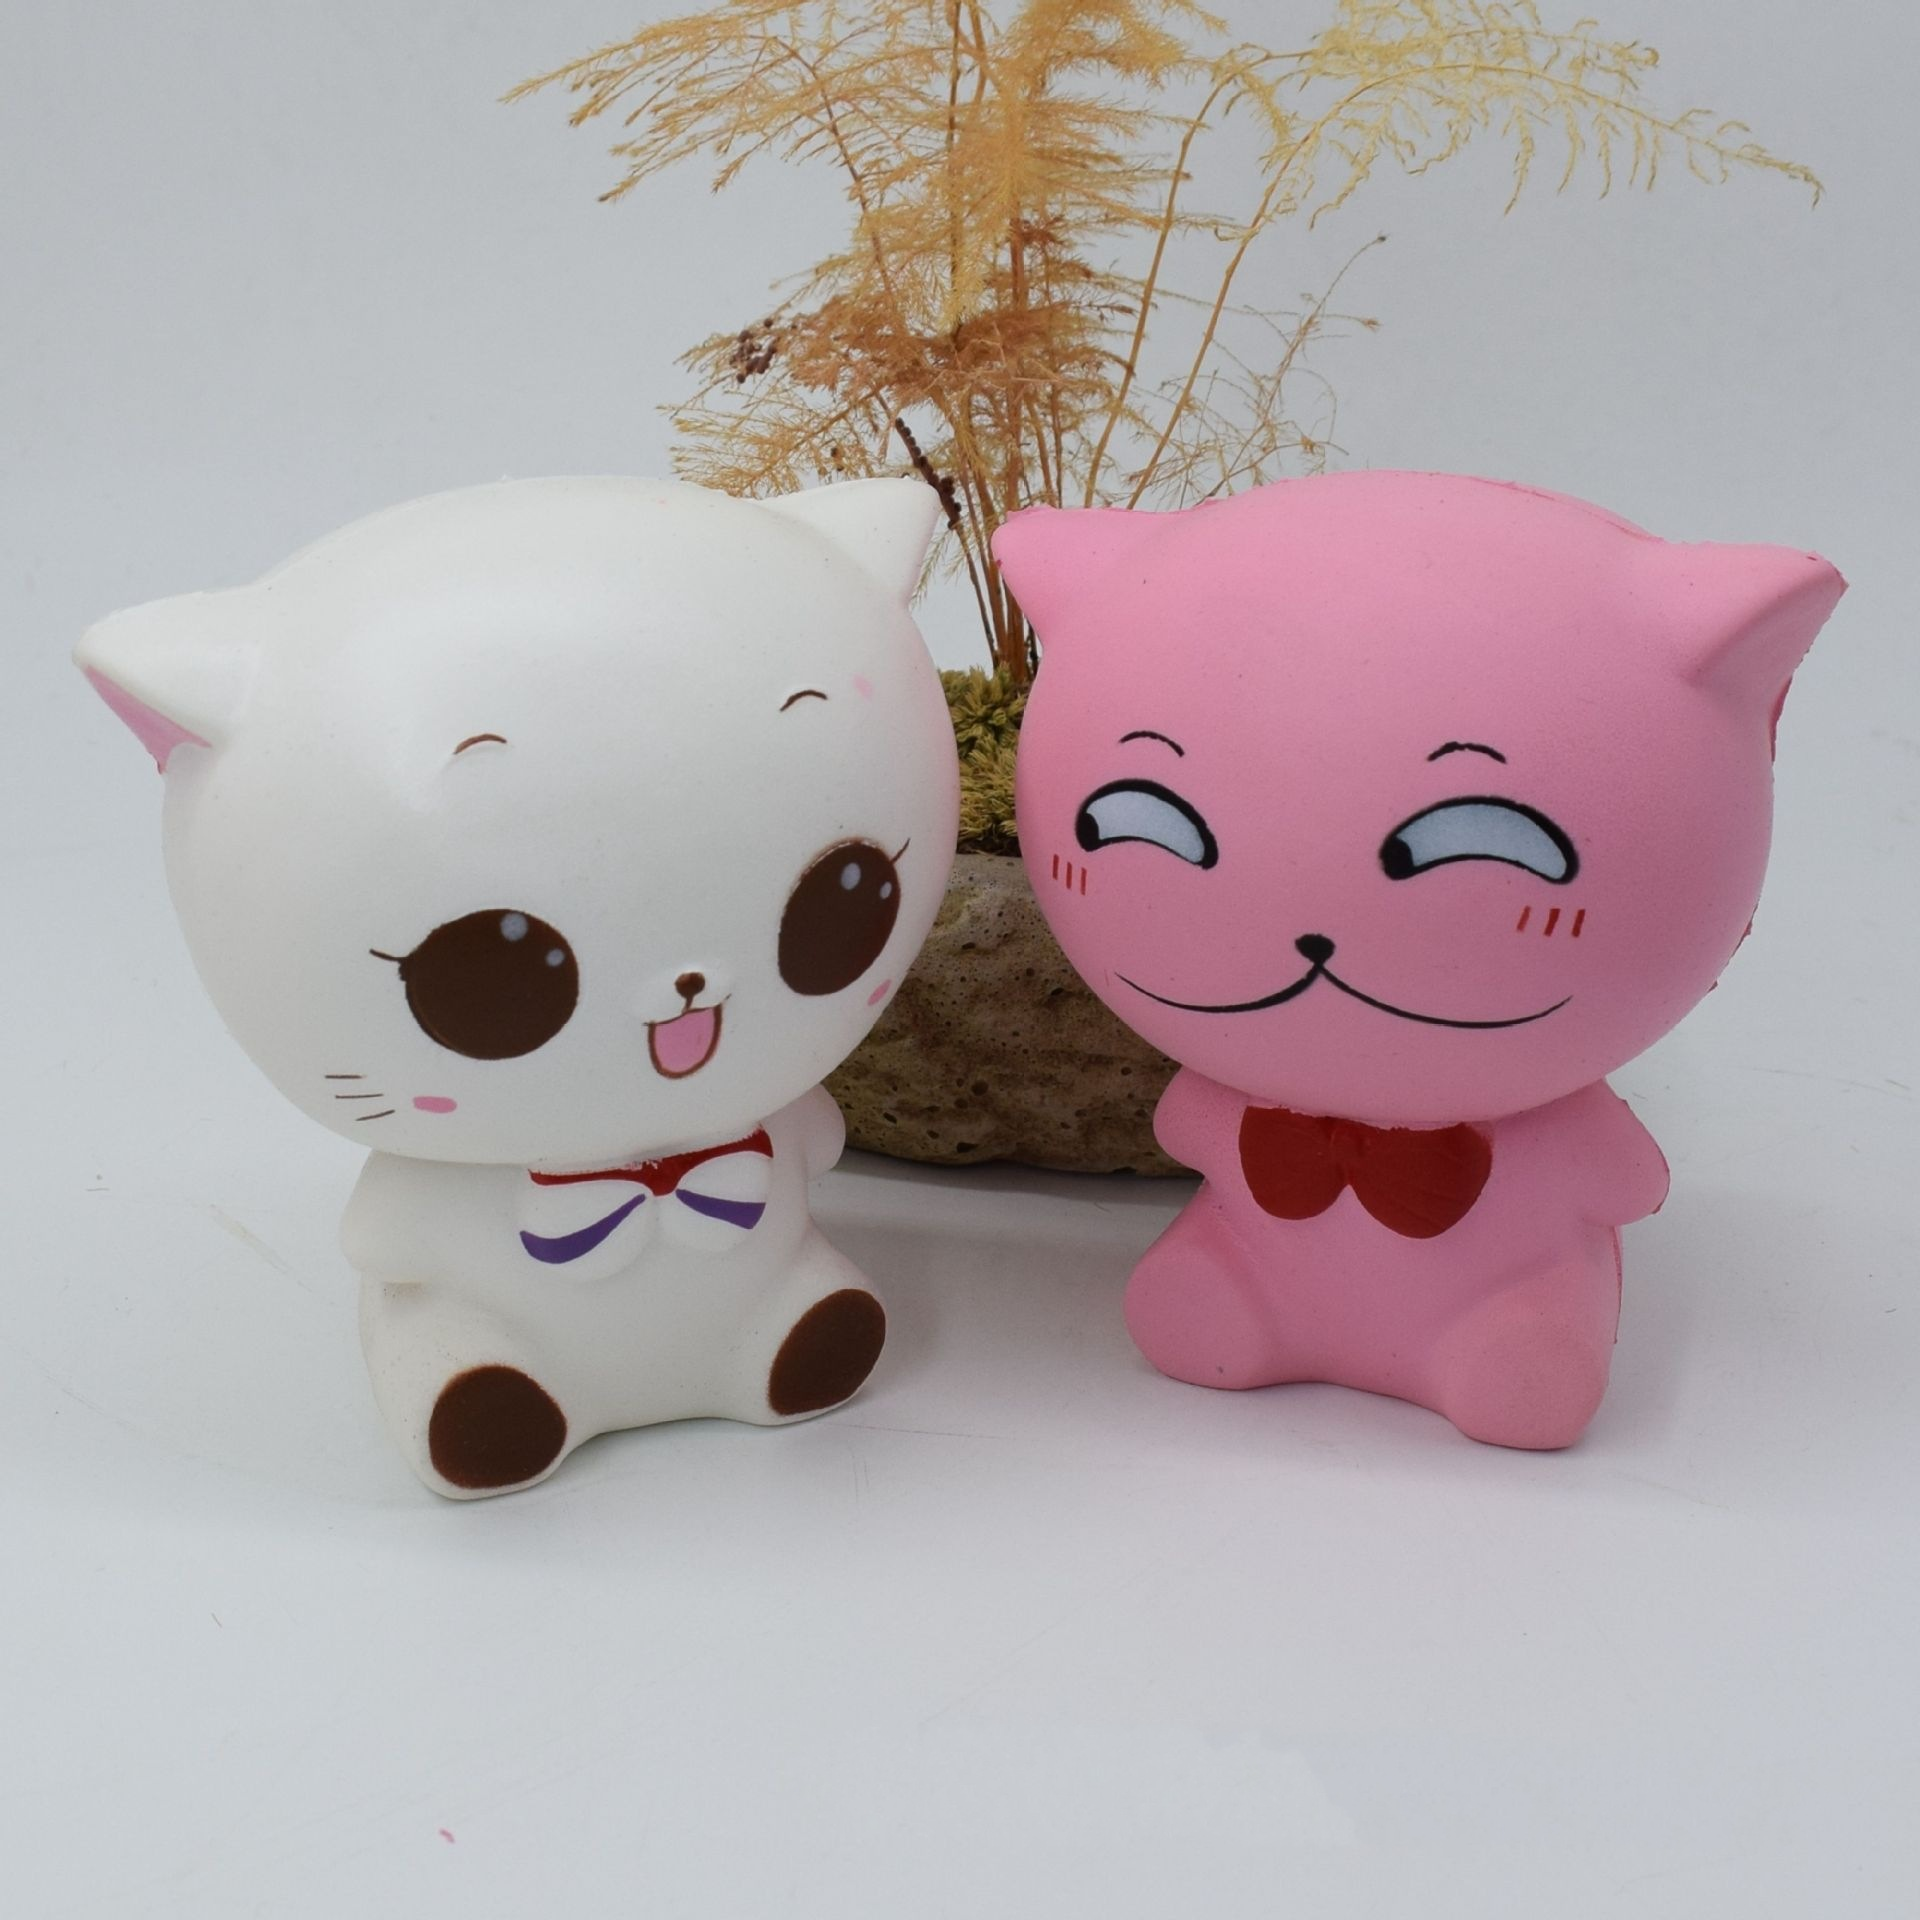 Squishy PU Action Figure Toys Stress Reliever Cute Expression Small Cat Doll Simulation Slow Rebound Cat Model Pu Model Spot